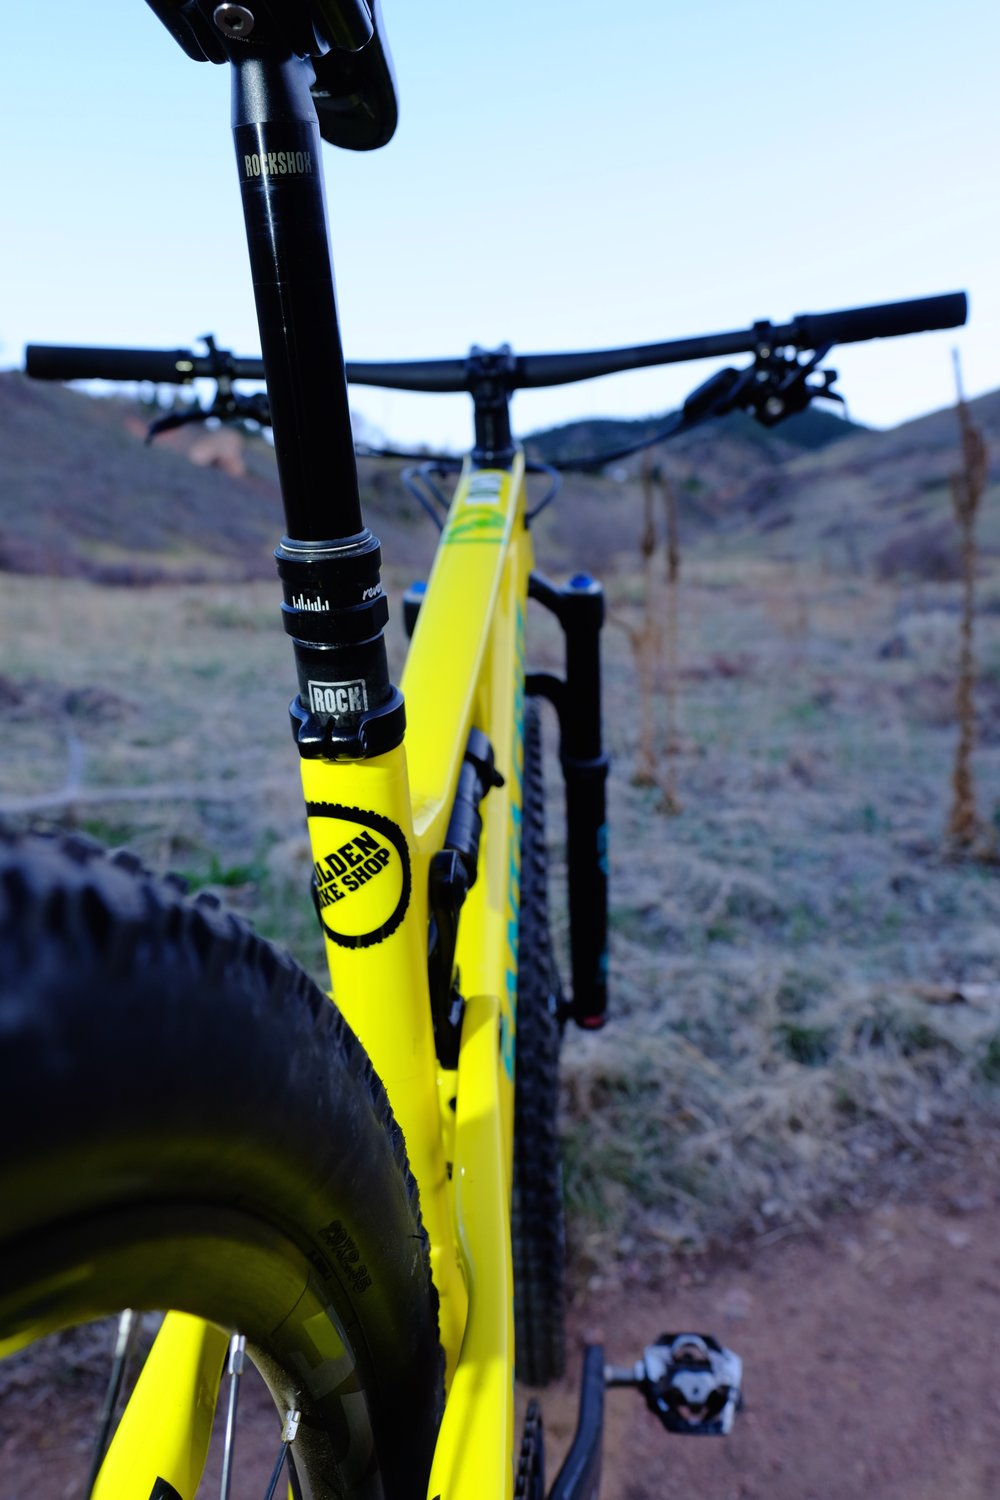 Santa Cruz Tallboy 3 - Chimney Gulch - Golden Colorado  |  Seatpost